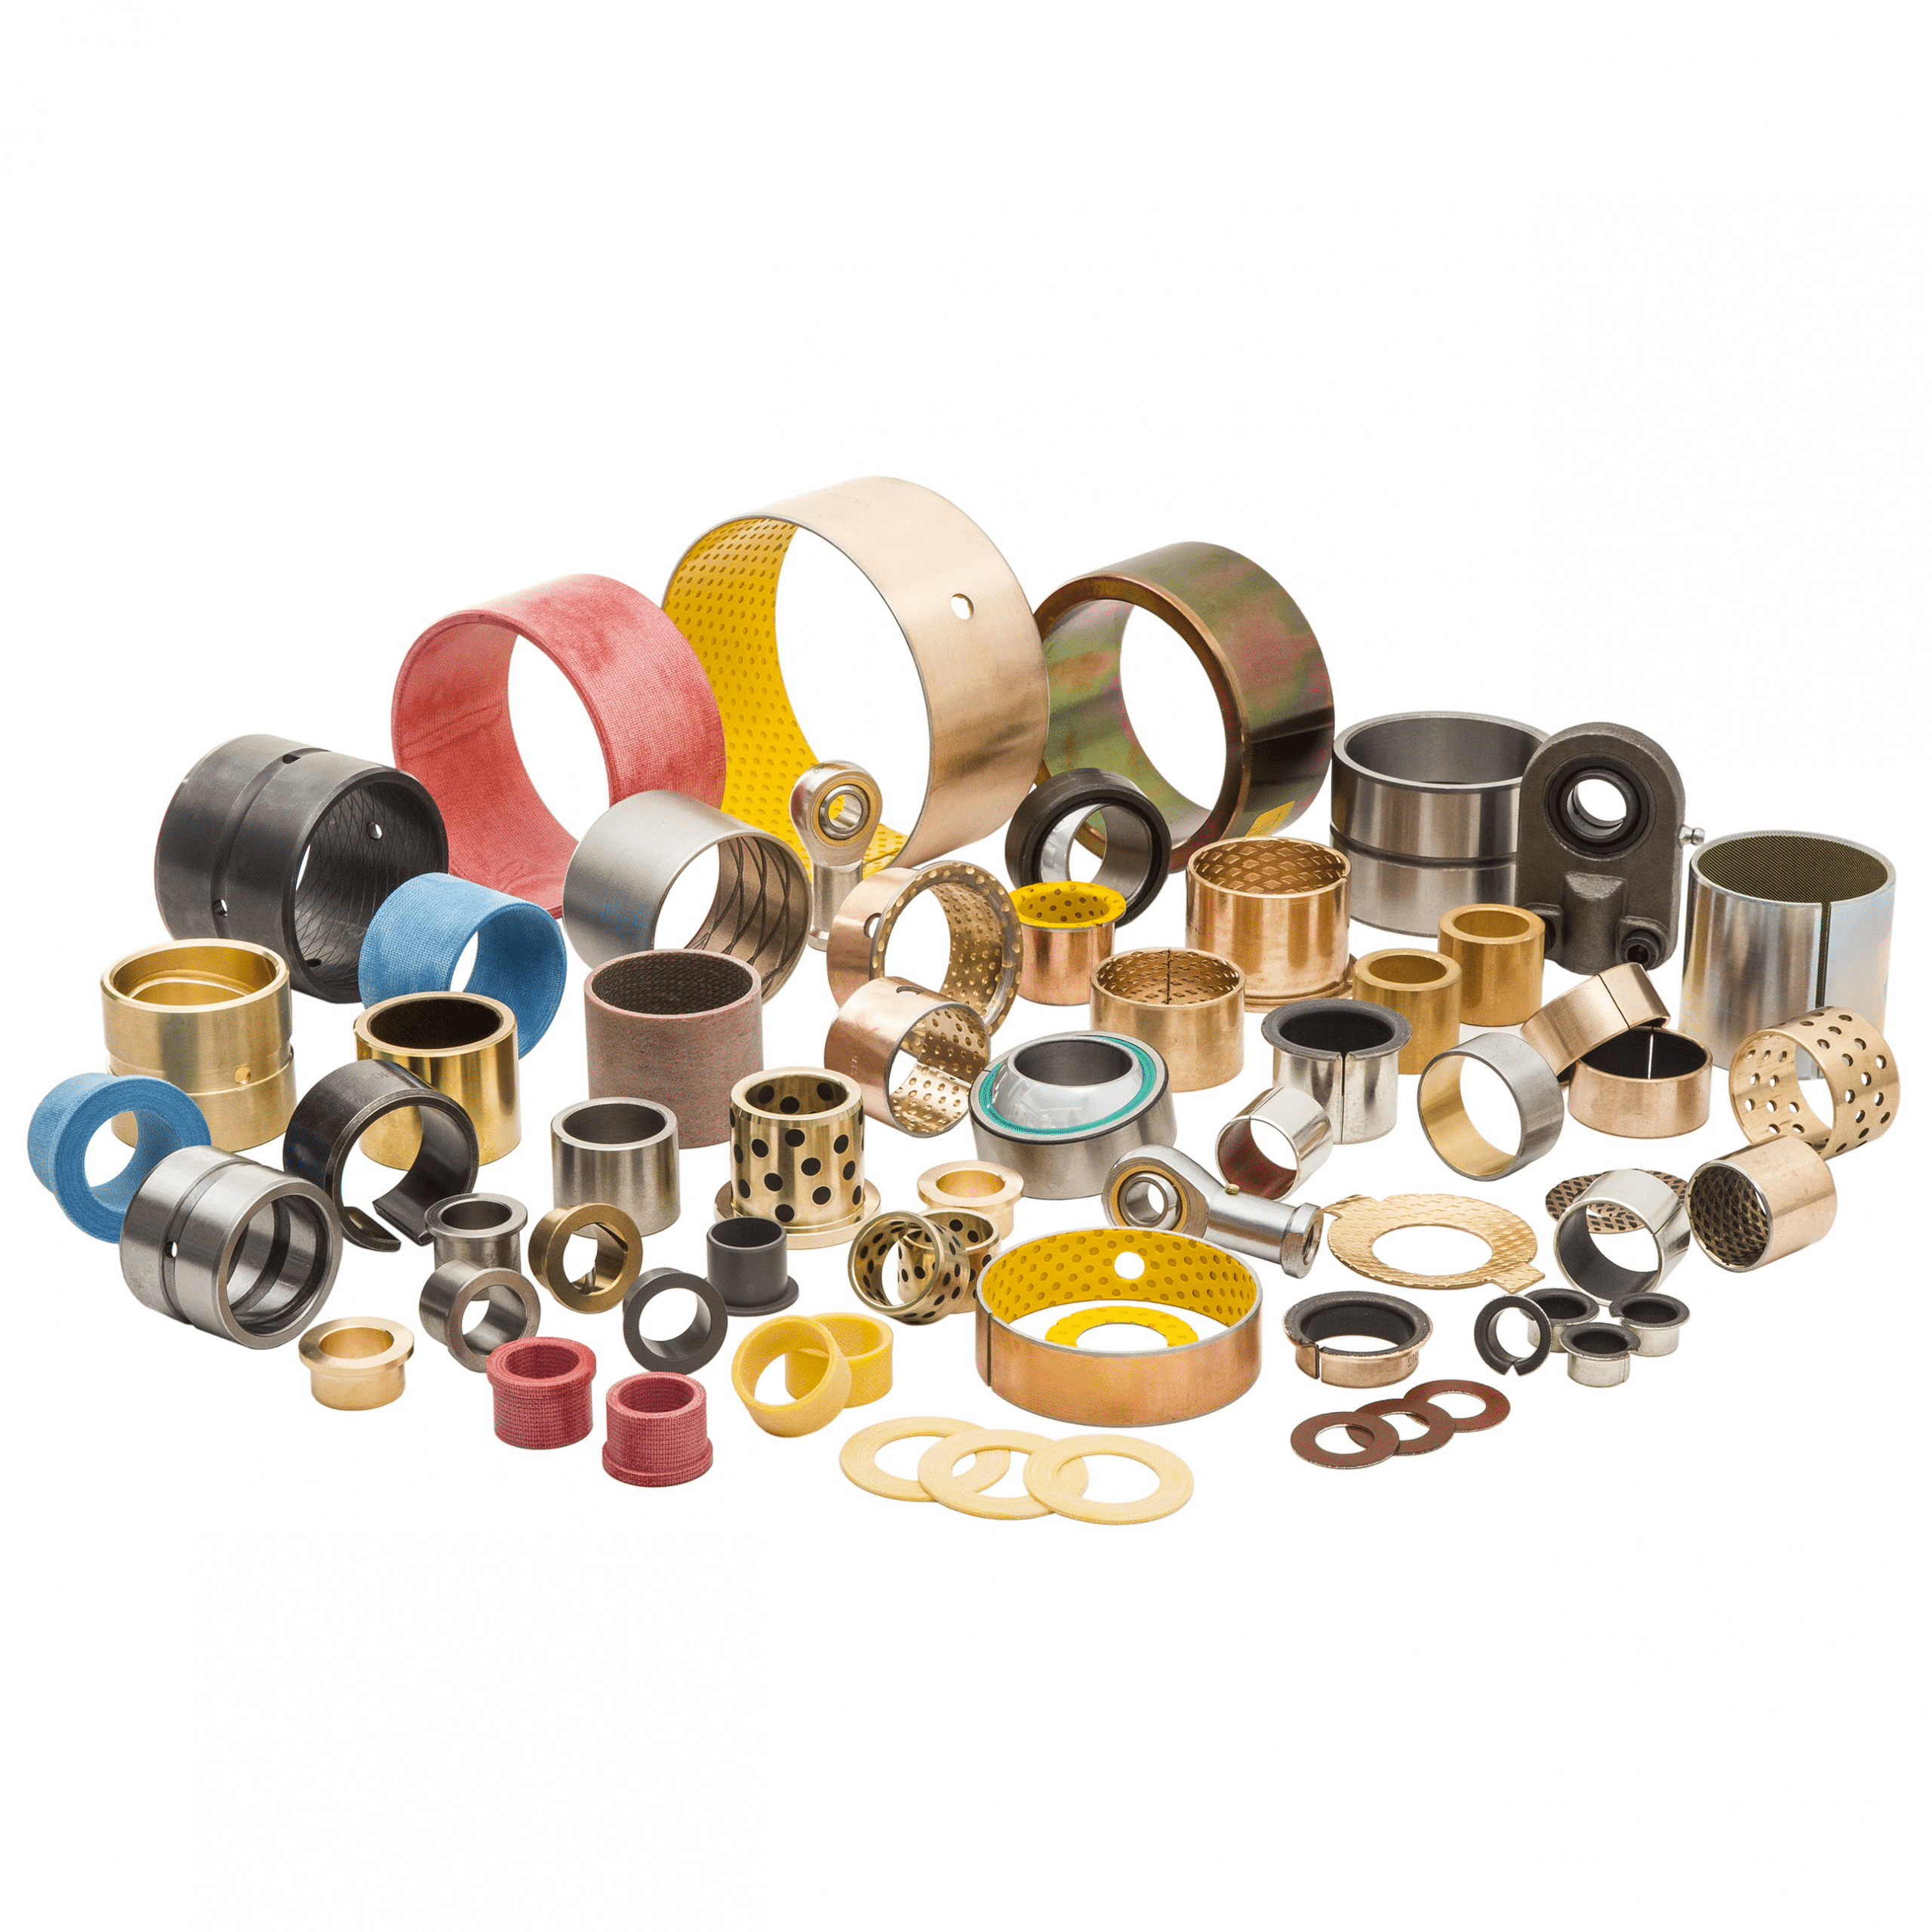 sleeve bushings sliding bearings